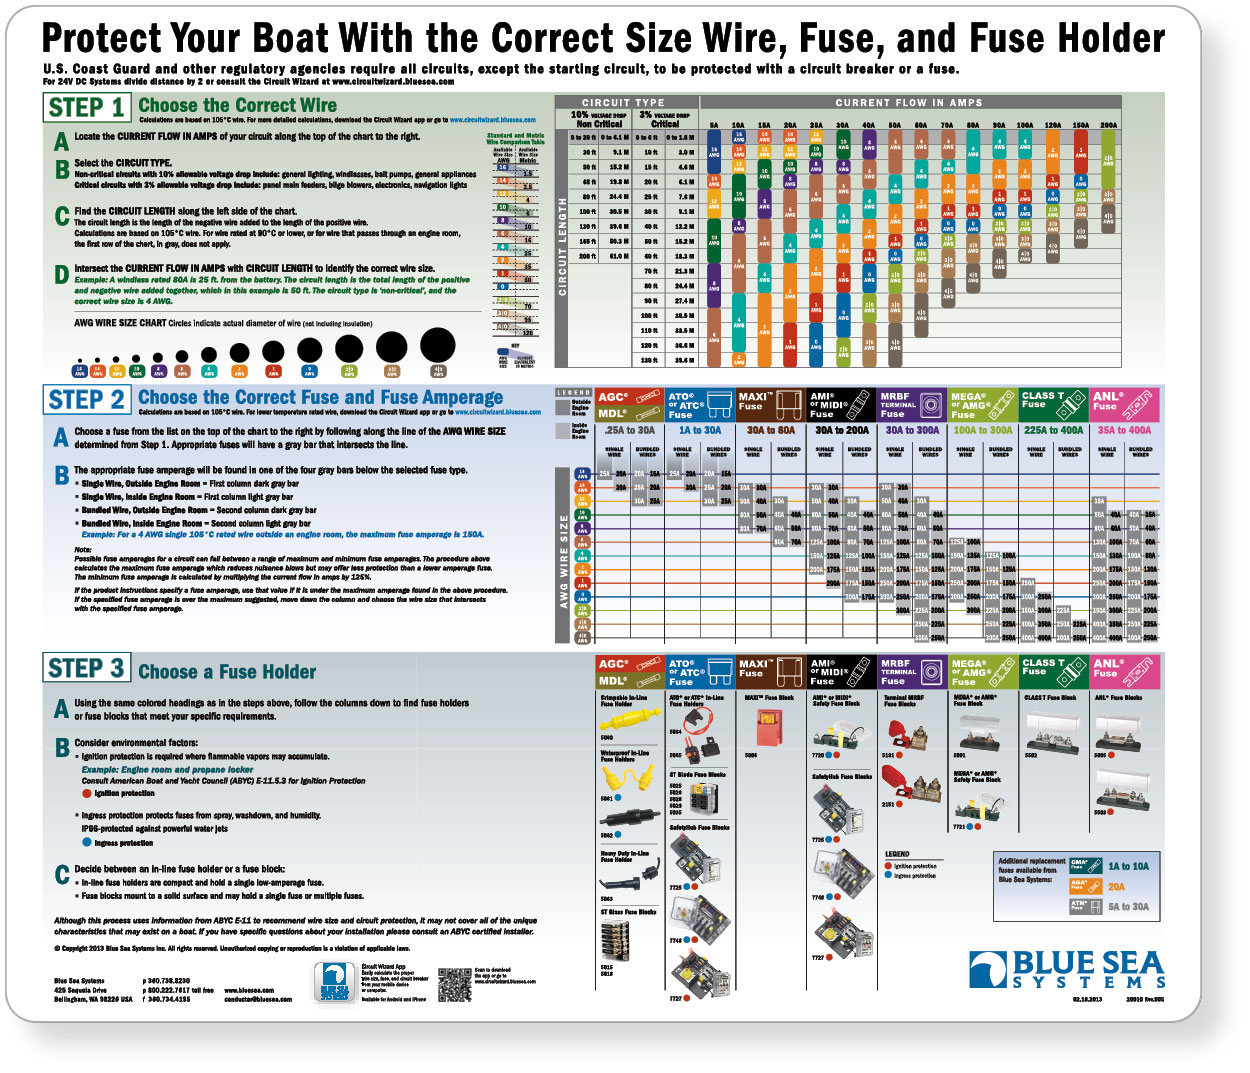 Wire fuse and fuse holder selection chart faq blue sea systems product image keyboard keysfo Choice Image